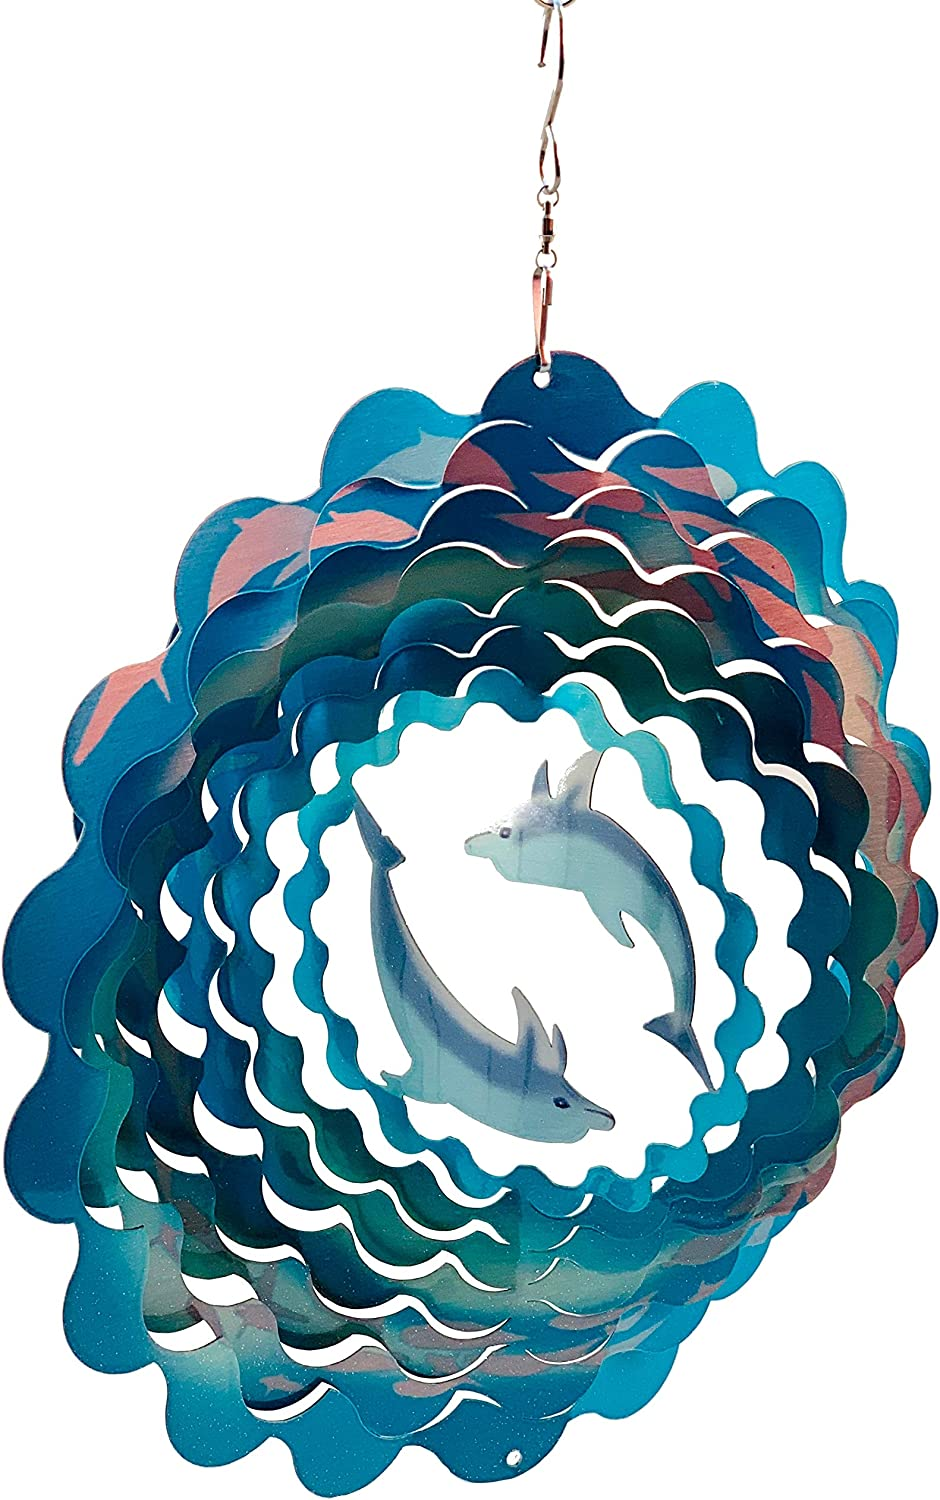 Dundee Deco W2344 Wind Spinner in Gift Box - 3D Hanging Indoor Outdoor Yard Garden Decoration - Mandala - Dolphins - Teal, Blue - 12 inch - Unique Gift Idea for Men Women, Souvenir, Present